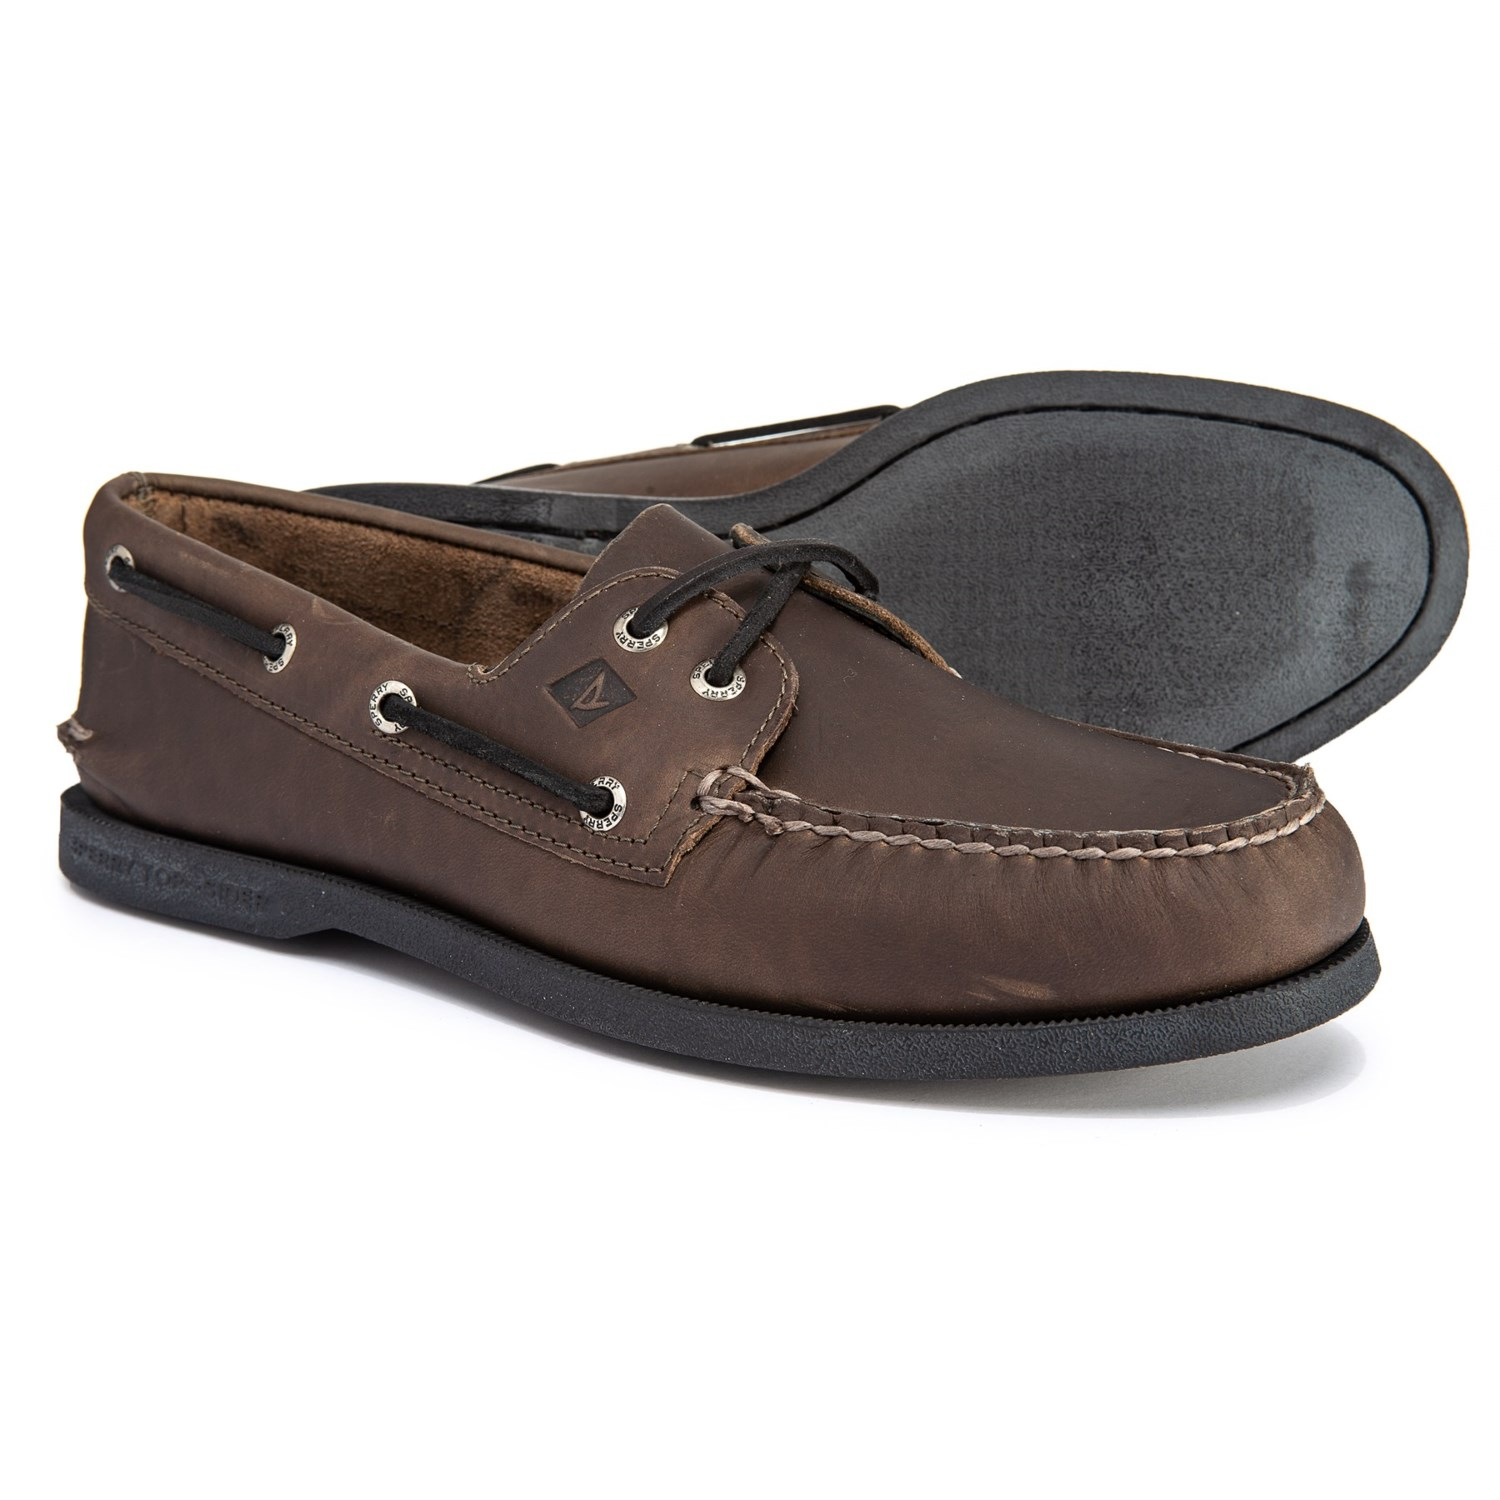 2e60f0dd7c237 Sperry Authentic Original Pullup Boat Shoes - Leather (For Men)